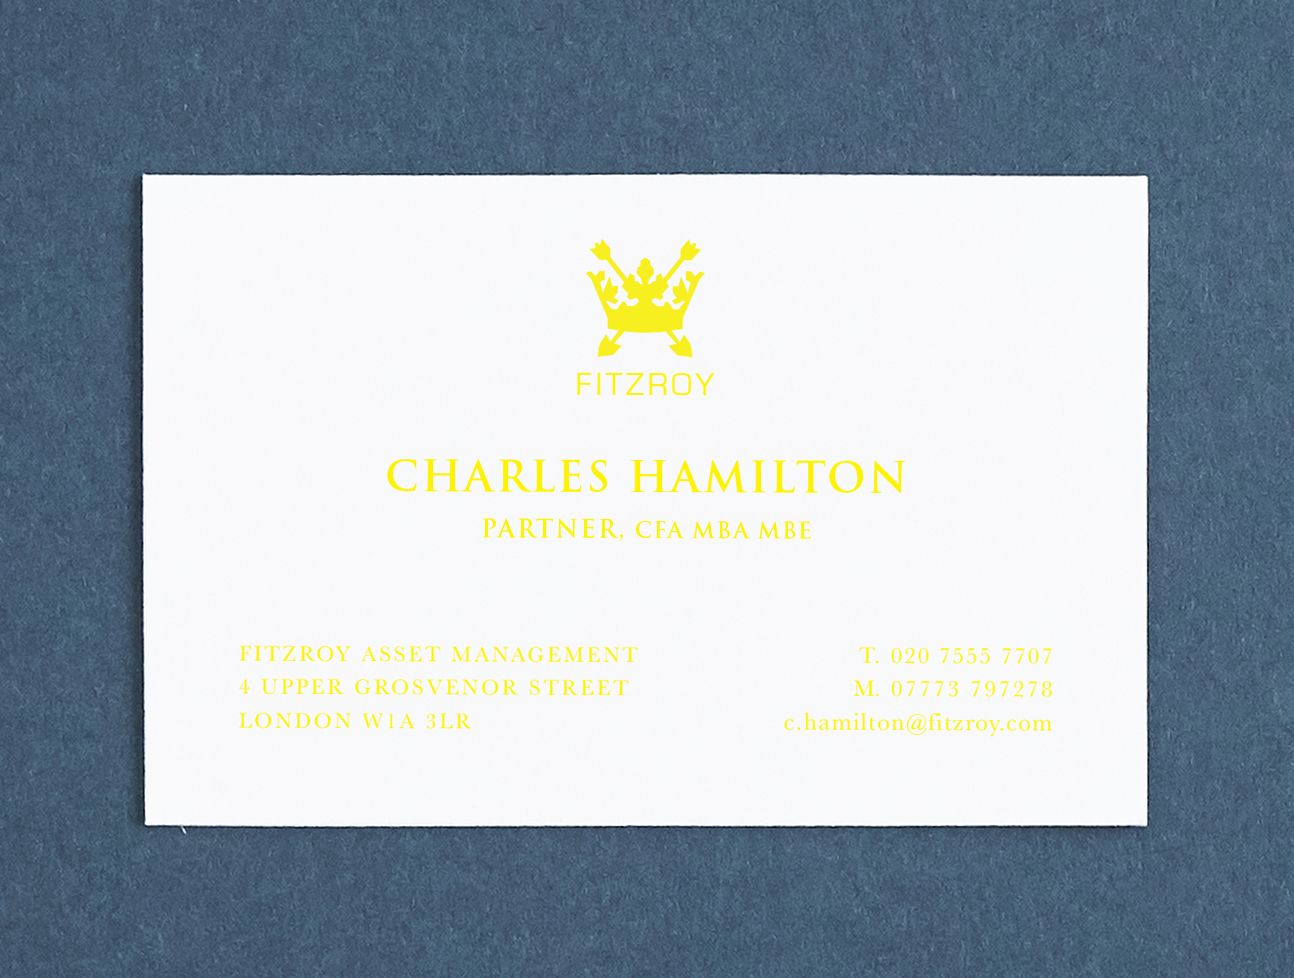 printed name cards custom made business cards personalised